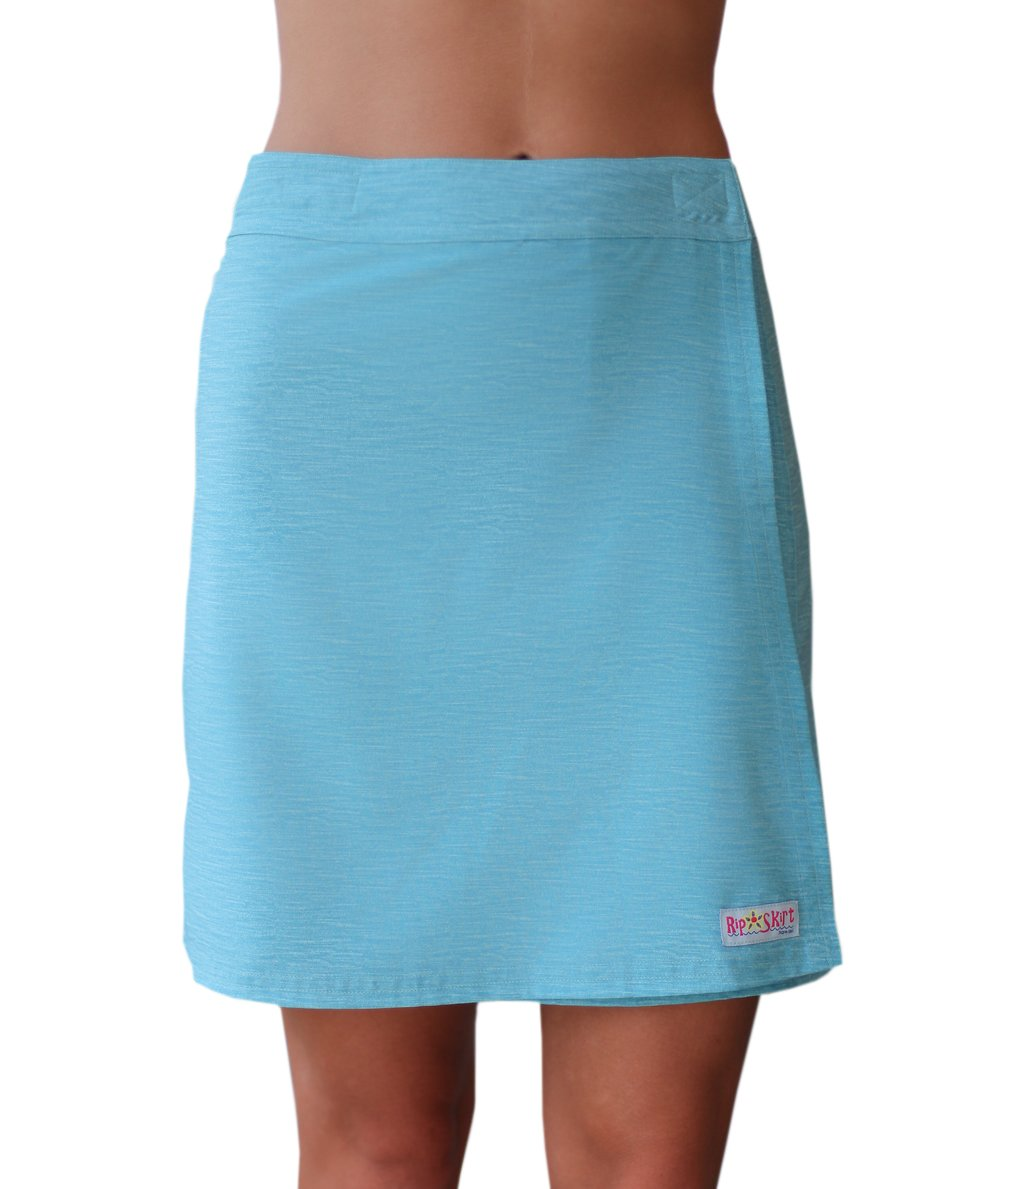 RipSkirt Hawaii - Length 2 - Quick Wrap Athletic Cover-up that Multitasks as the Perfect Travel/Summer Skirt,Brushed Carribbean,Medium / 8-10